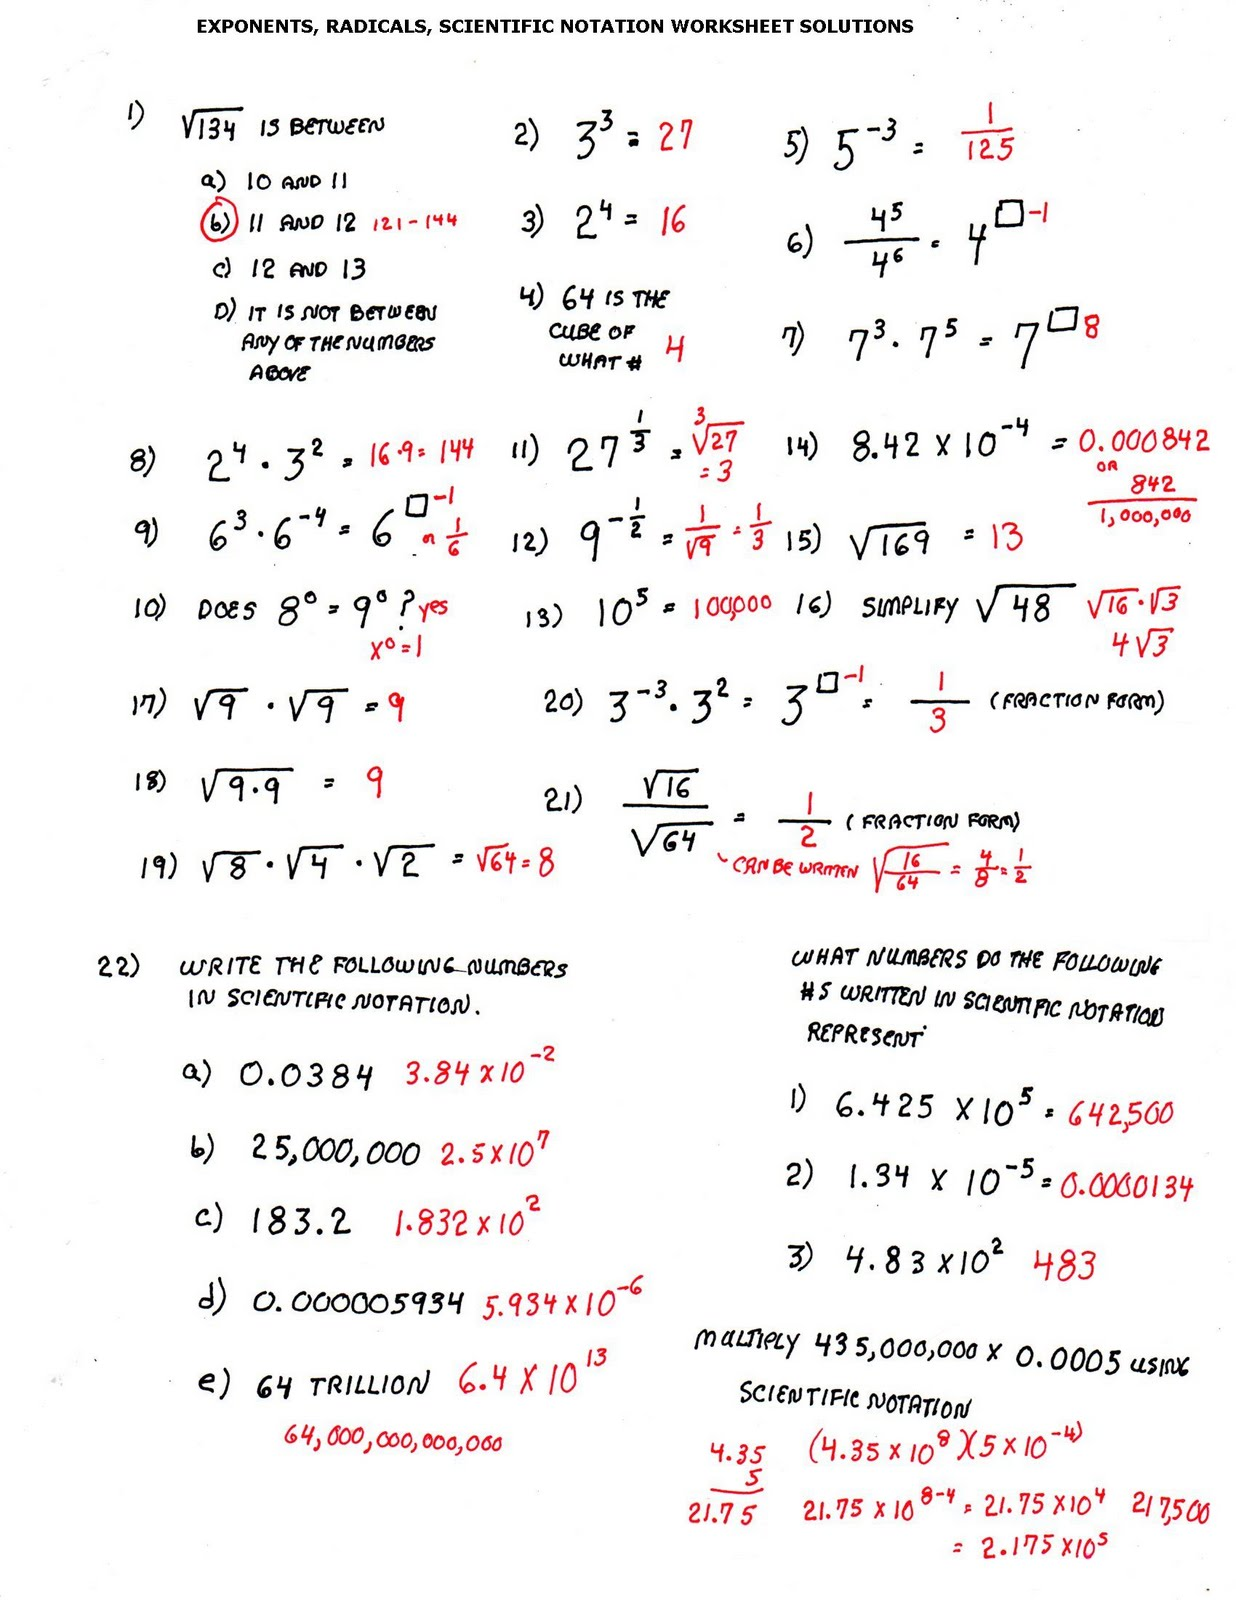 worksheet Operations With Scientific Notation Worksheet scientific notation operations worksheet delibertad with worksheet